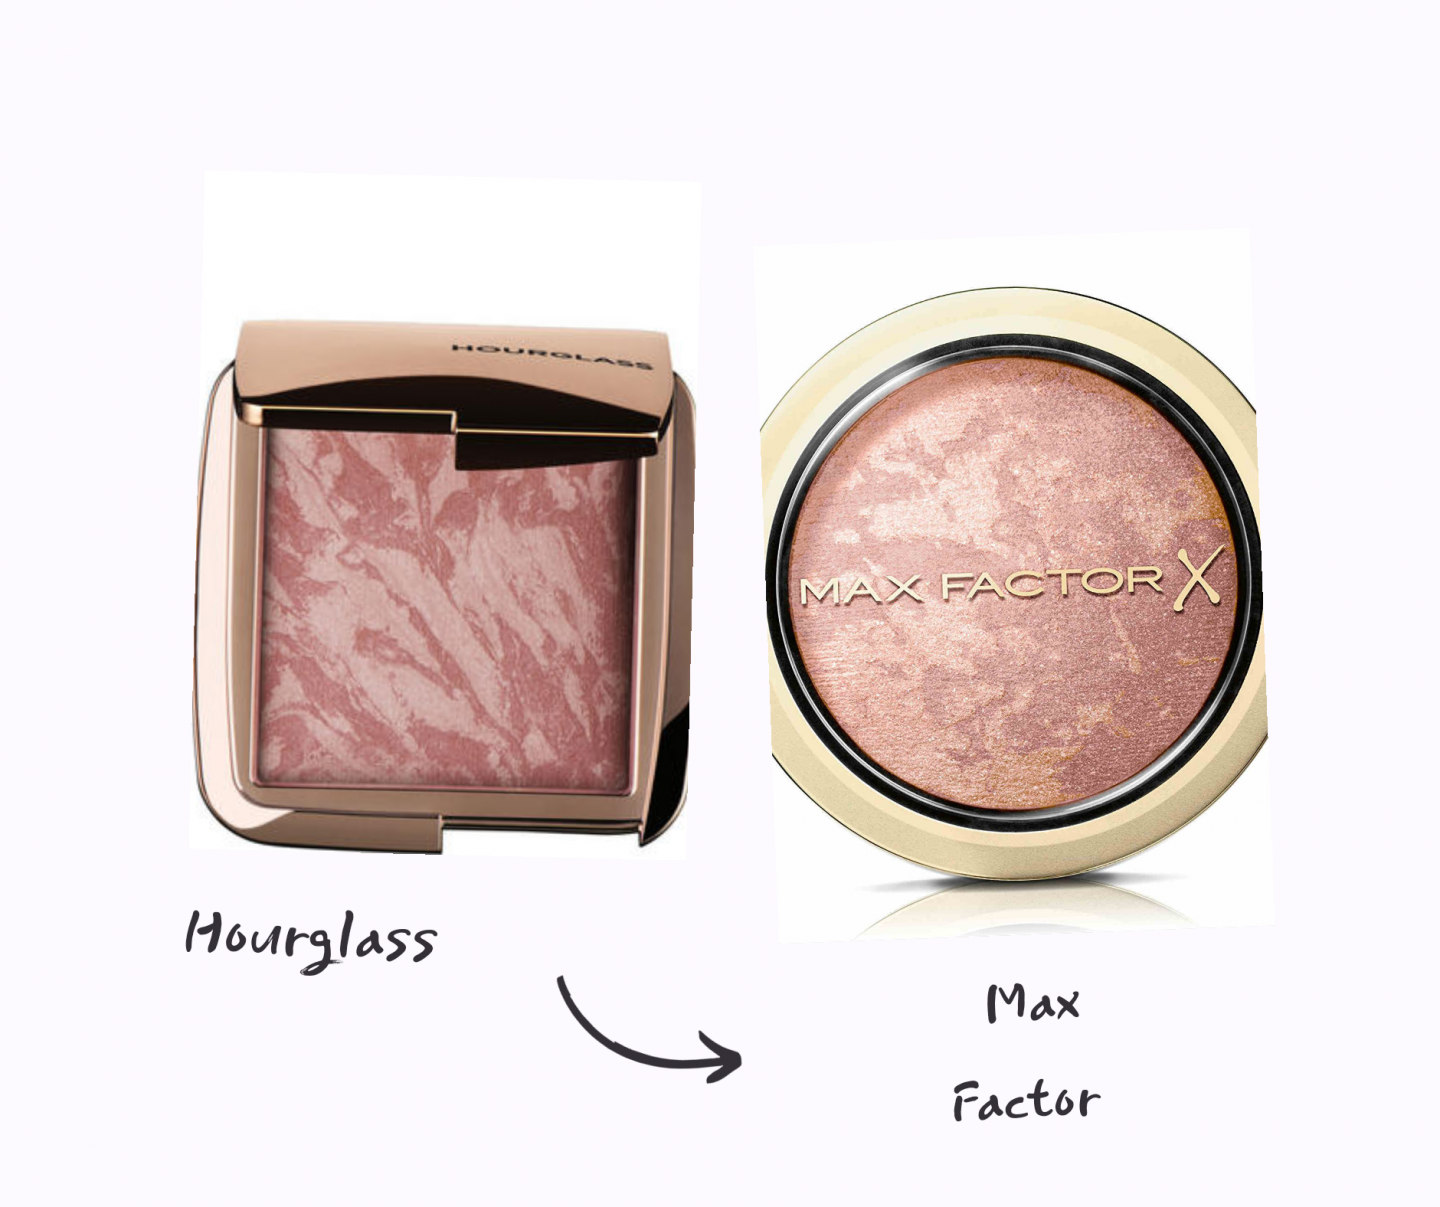 hourglass dupe dupes for iconic high end products